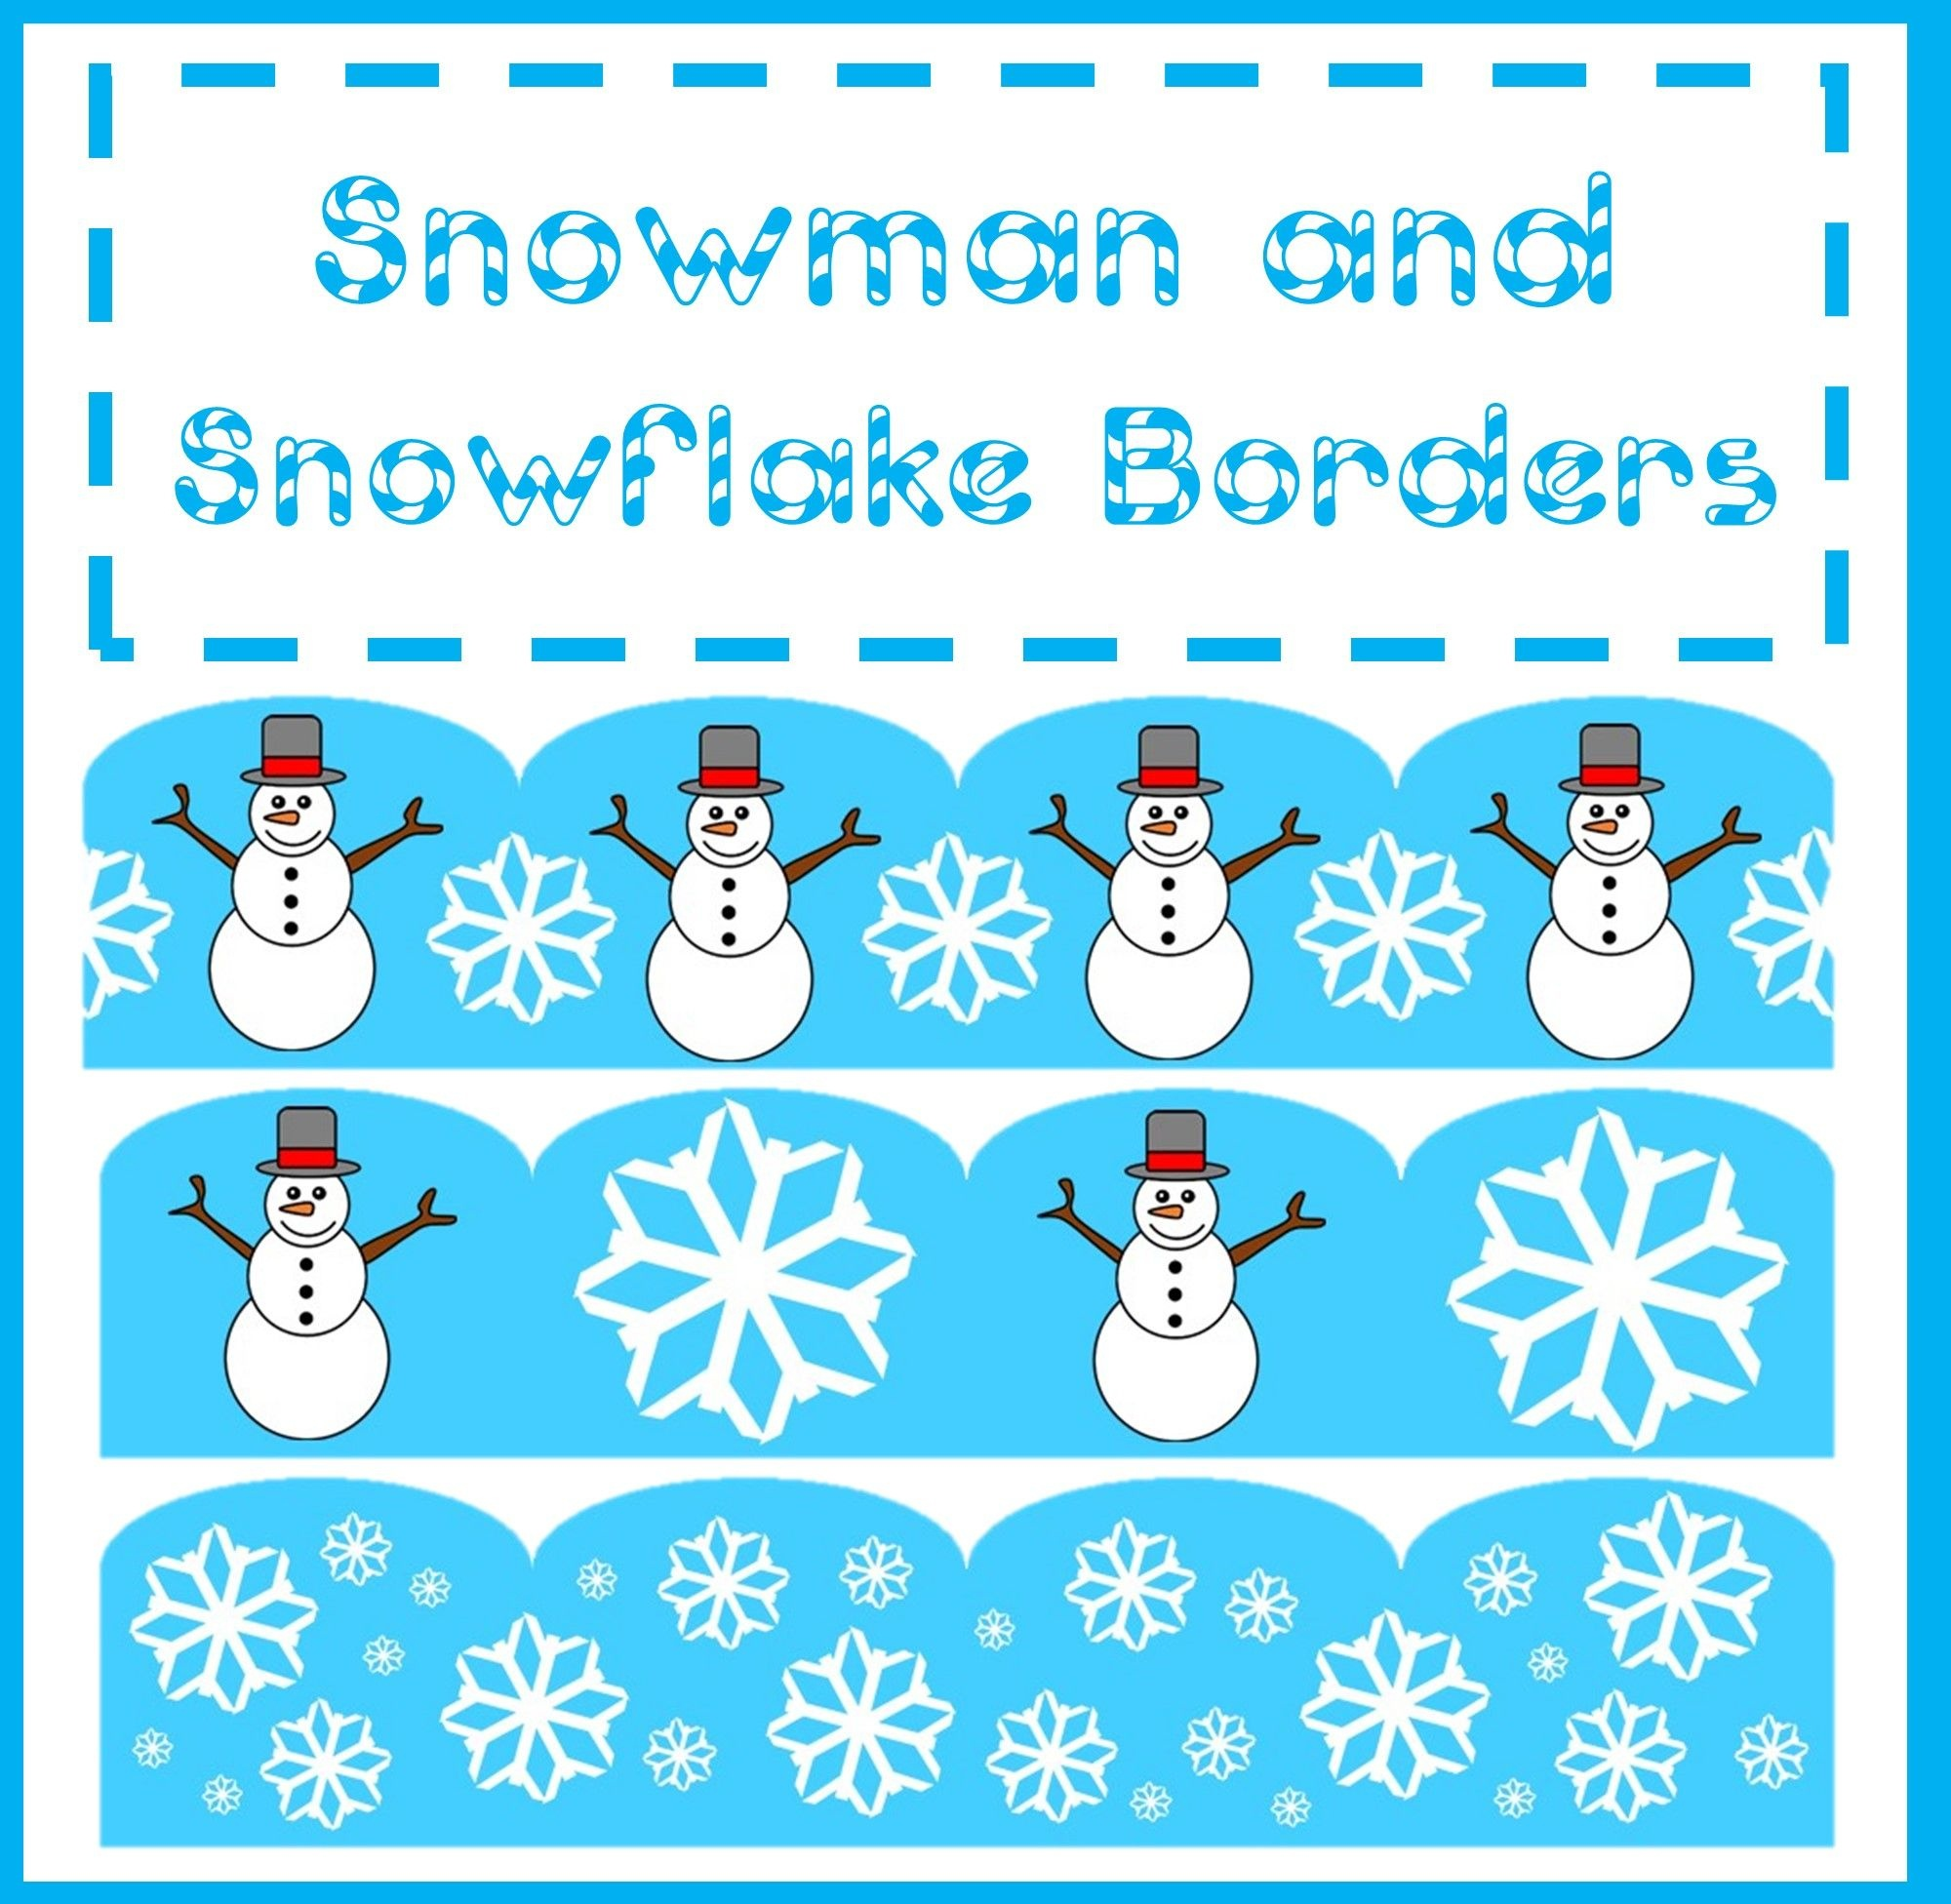 Very Cute Christmas Snowman And Snowflake Borders! Make Any Bulletin - Free Printable Christmas Bulletin Board Borders